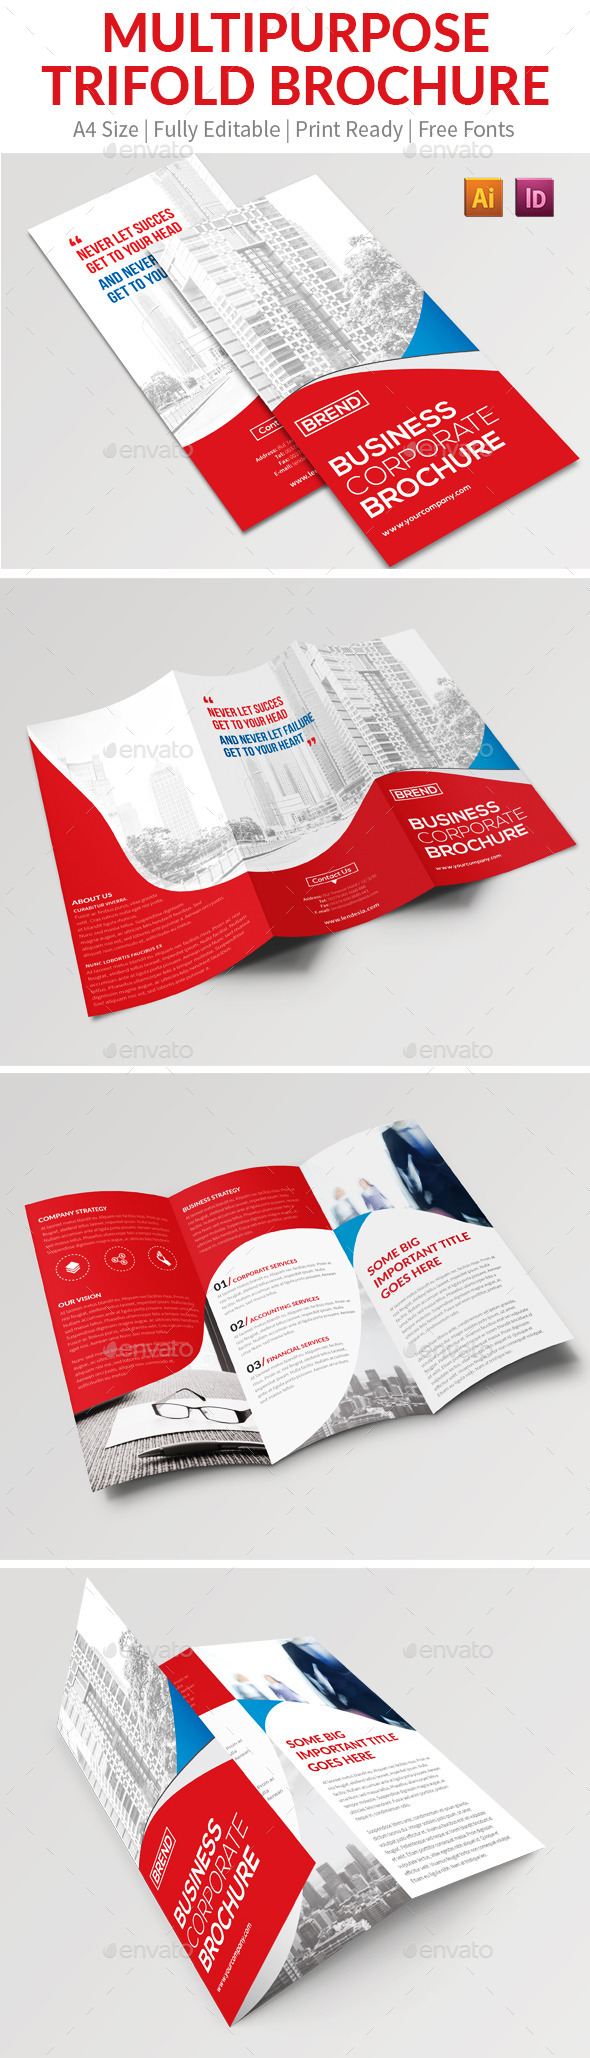 GraphicRiver Multipurpose Trifold Brochure 11775758